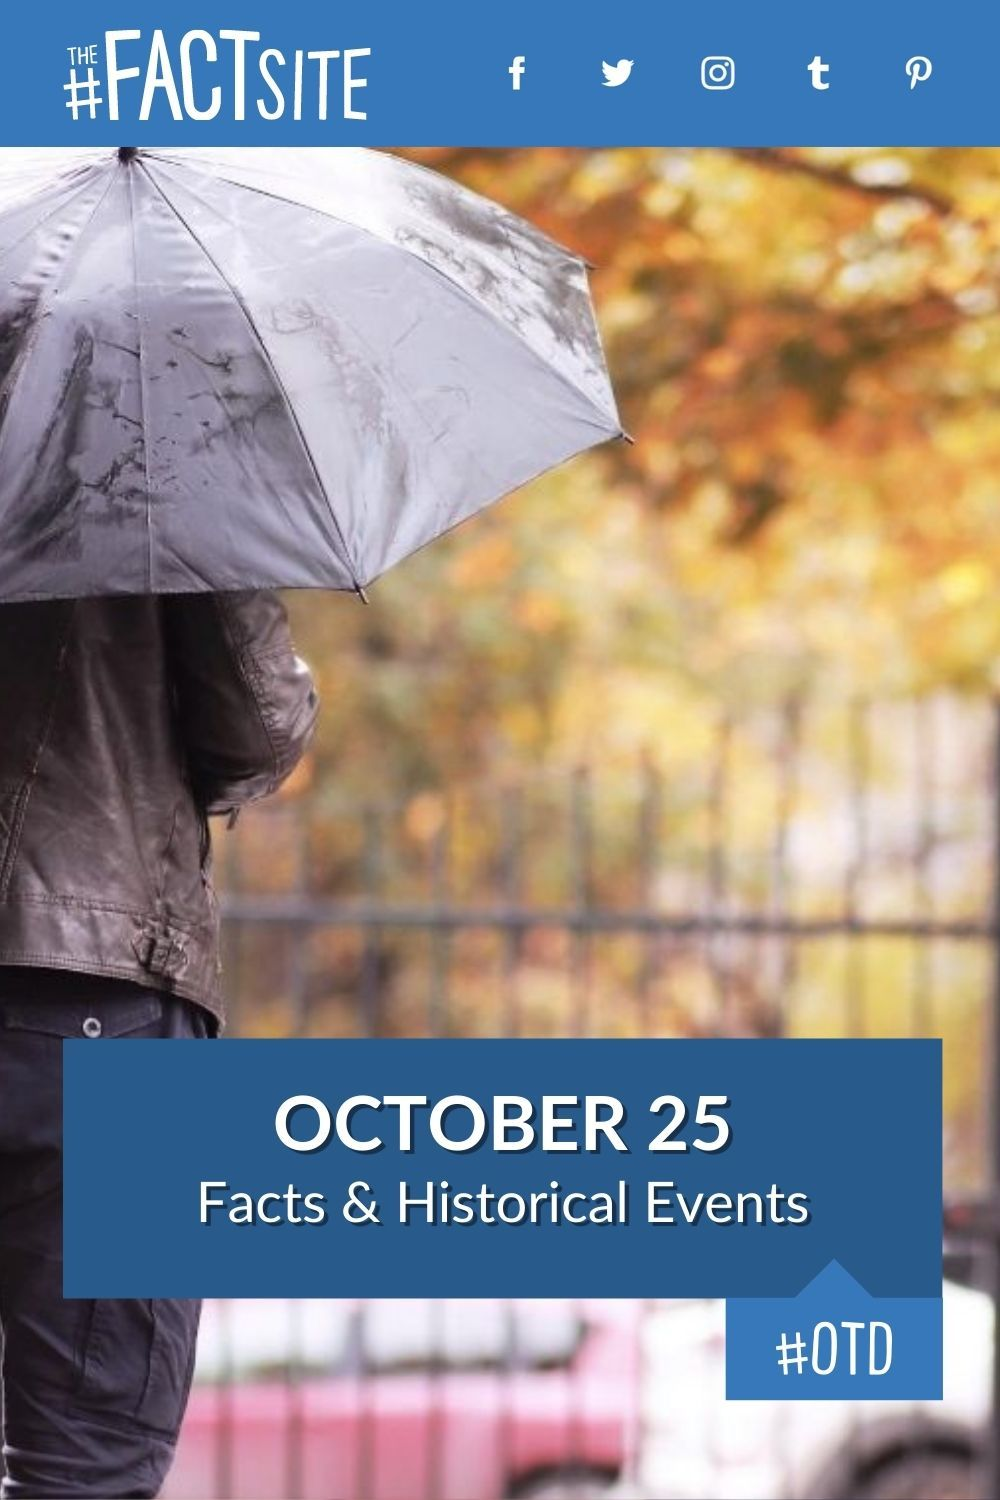 Facts & Historic Events That Happened on October 25